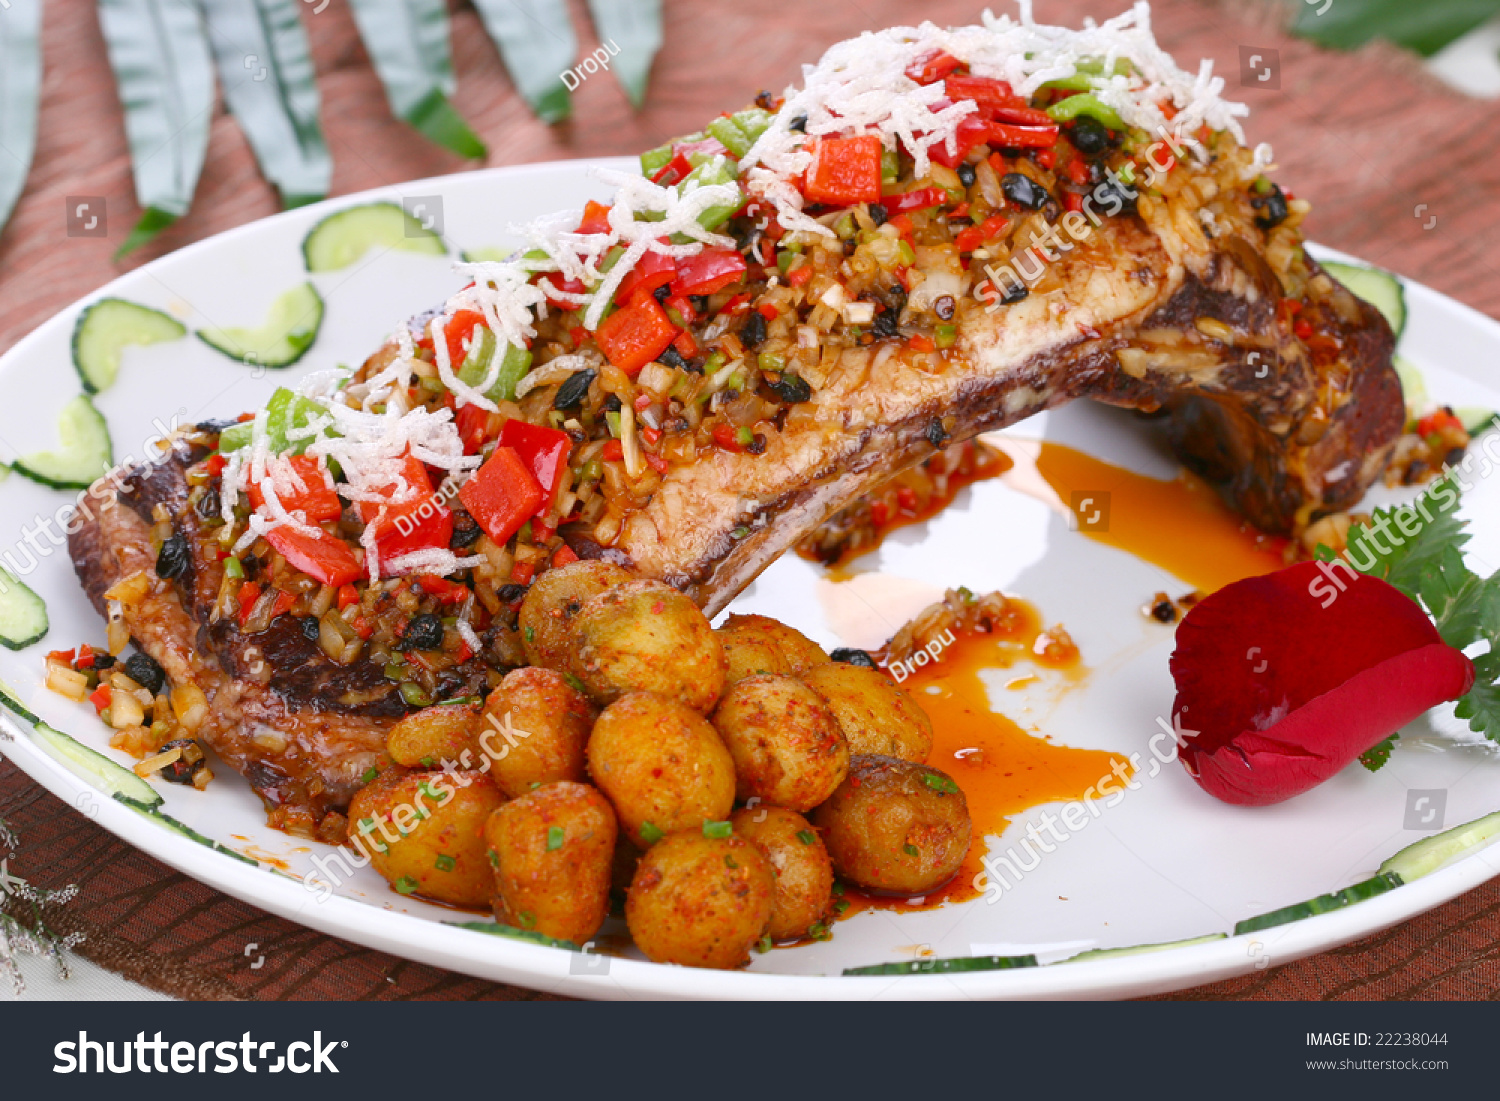 Delicious Chinese Fried Dish Pork Chop Stock Photo (Edit Now